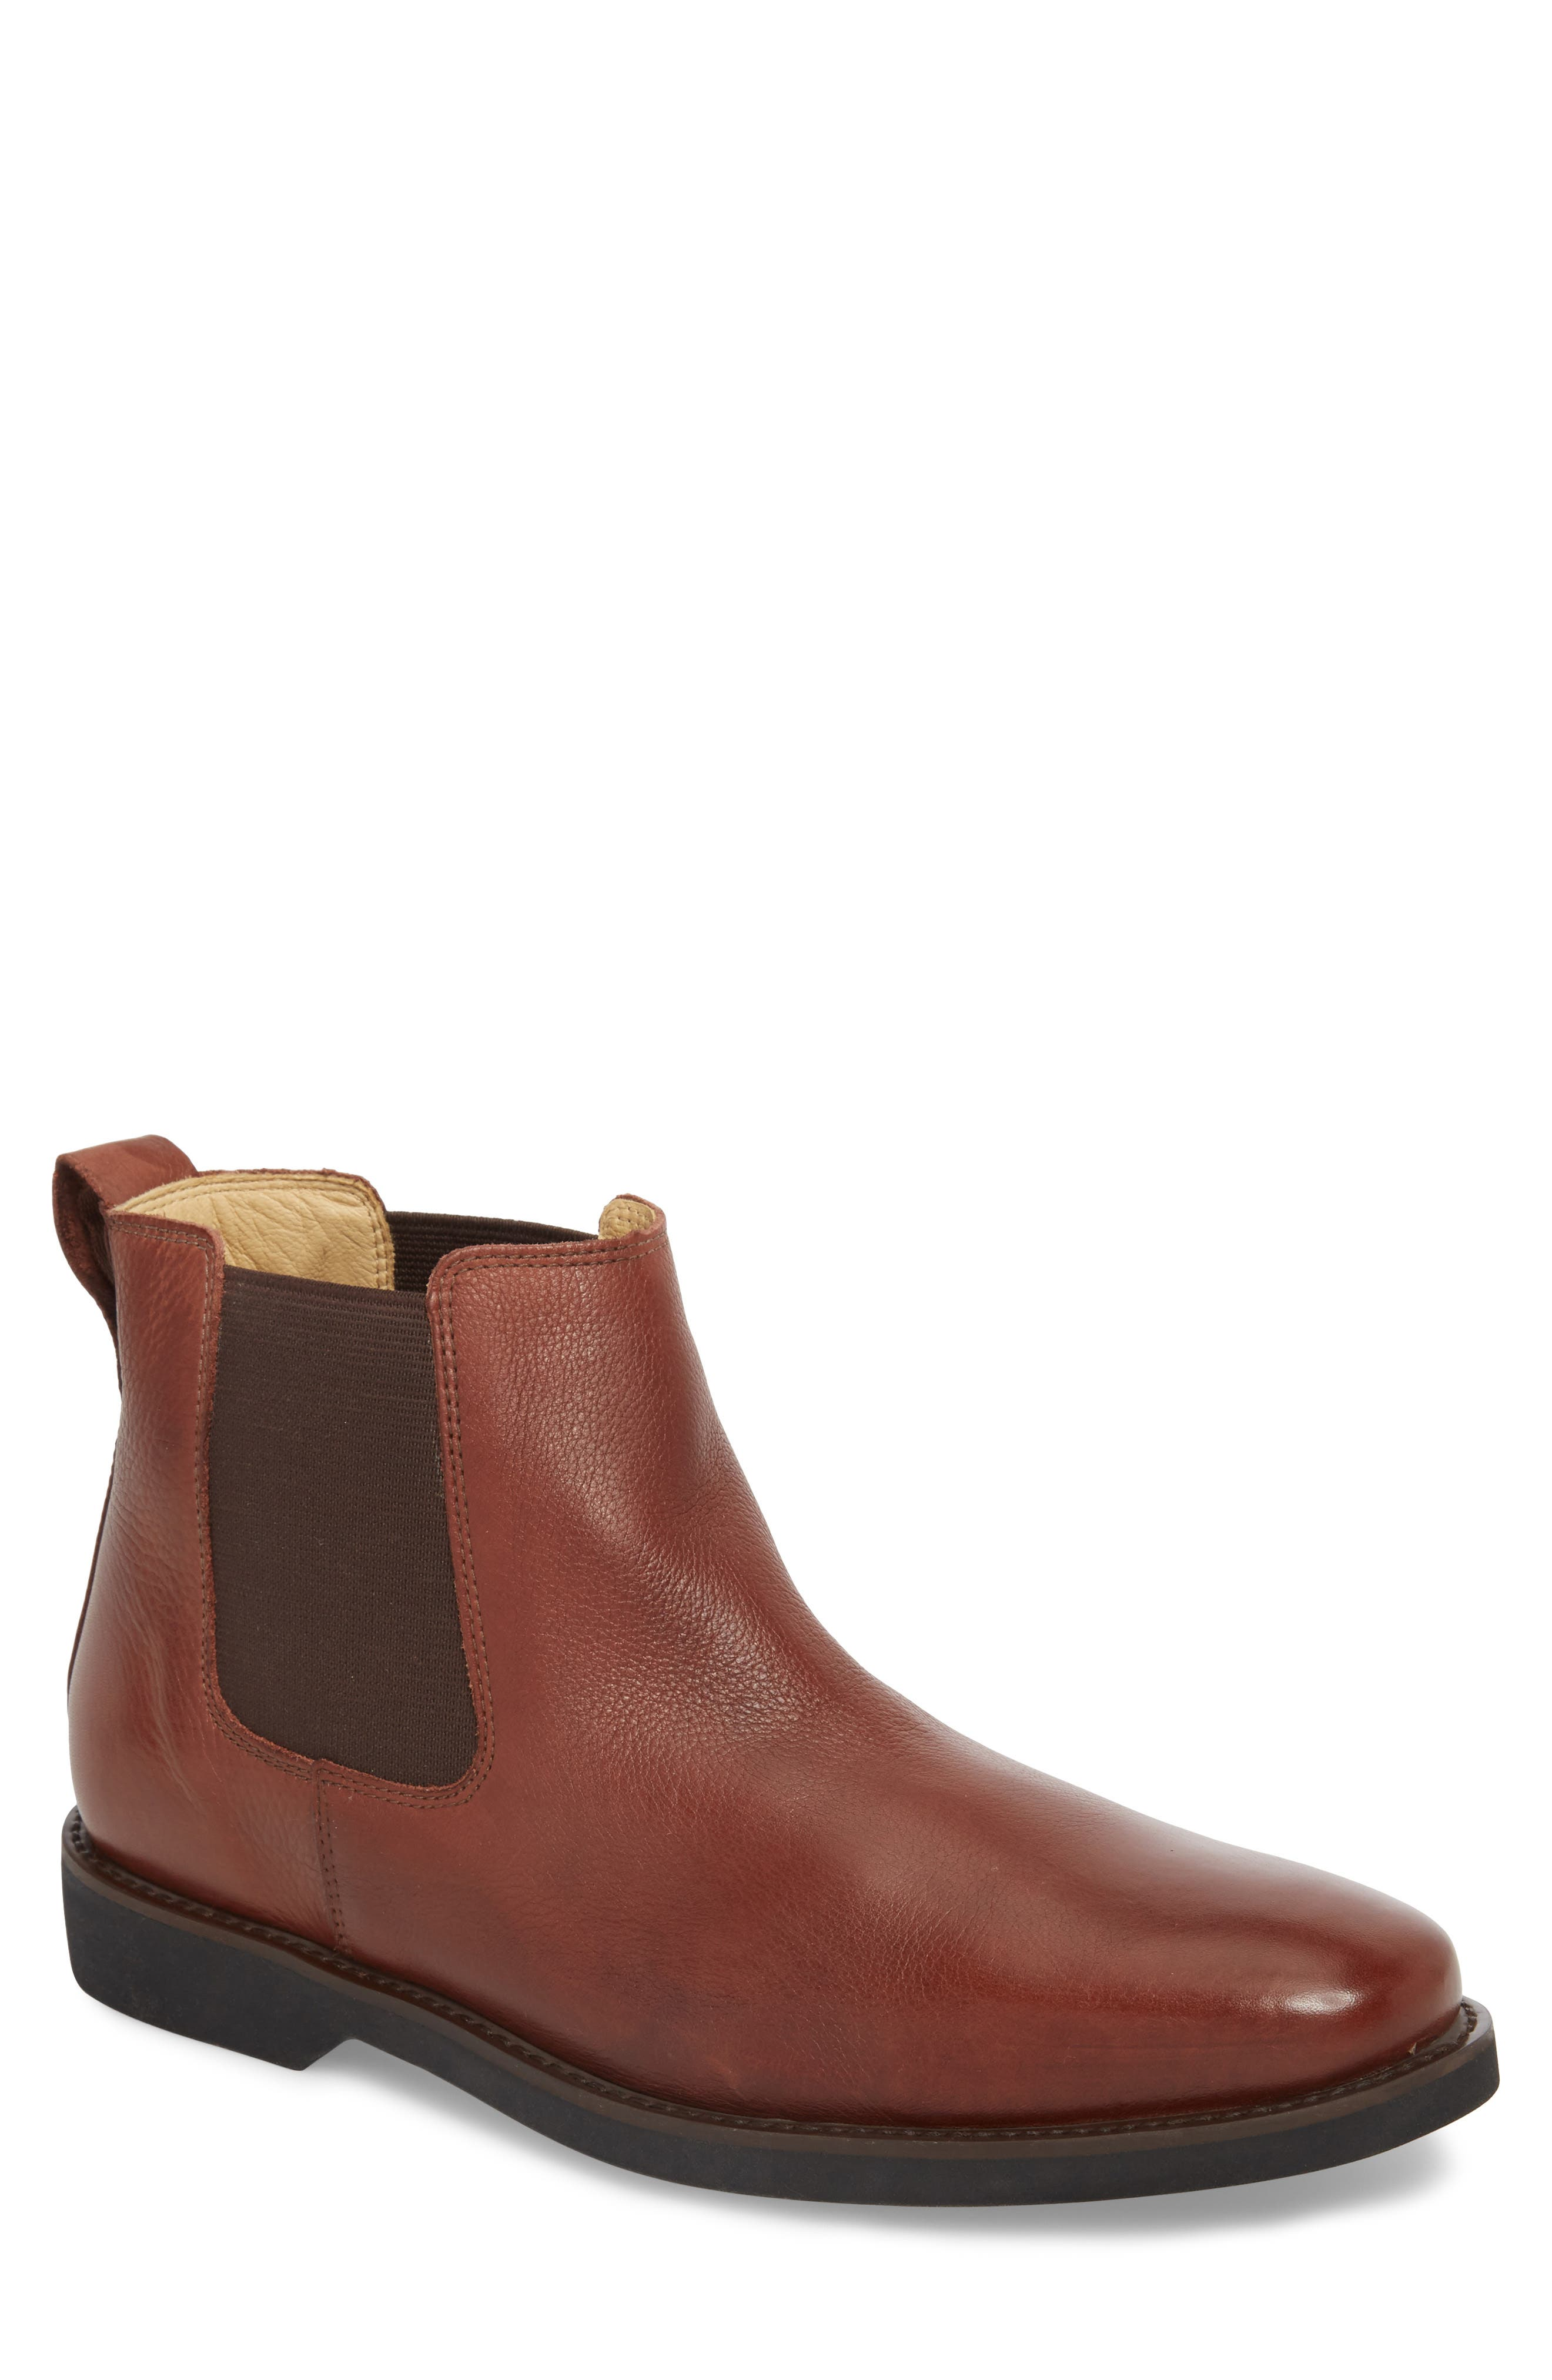 Cardoso Chelsea Boot,                             Main thumbnail 1, color,                             Floater Pinaho Leather